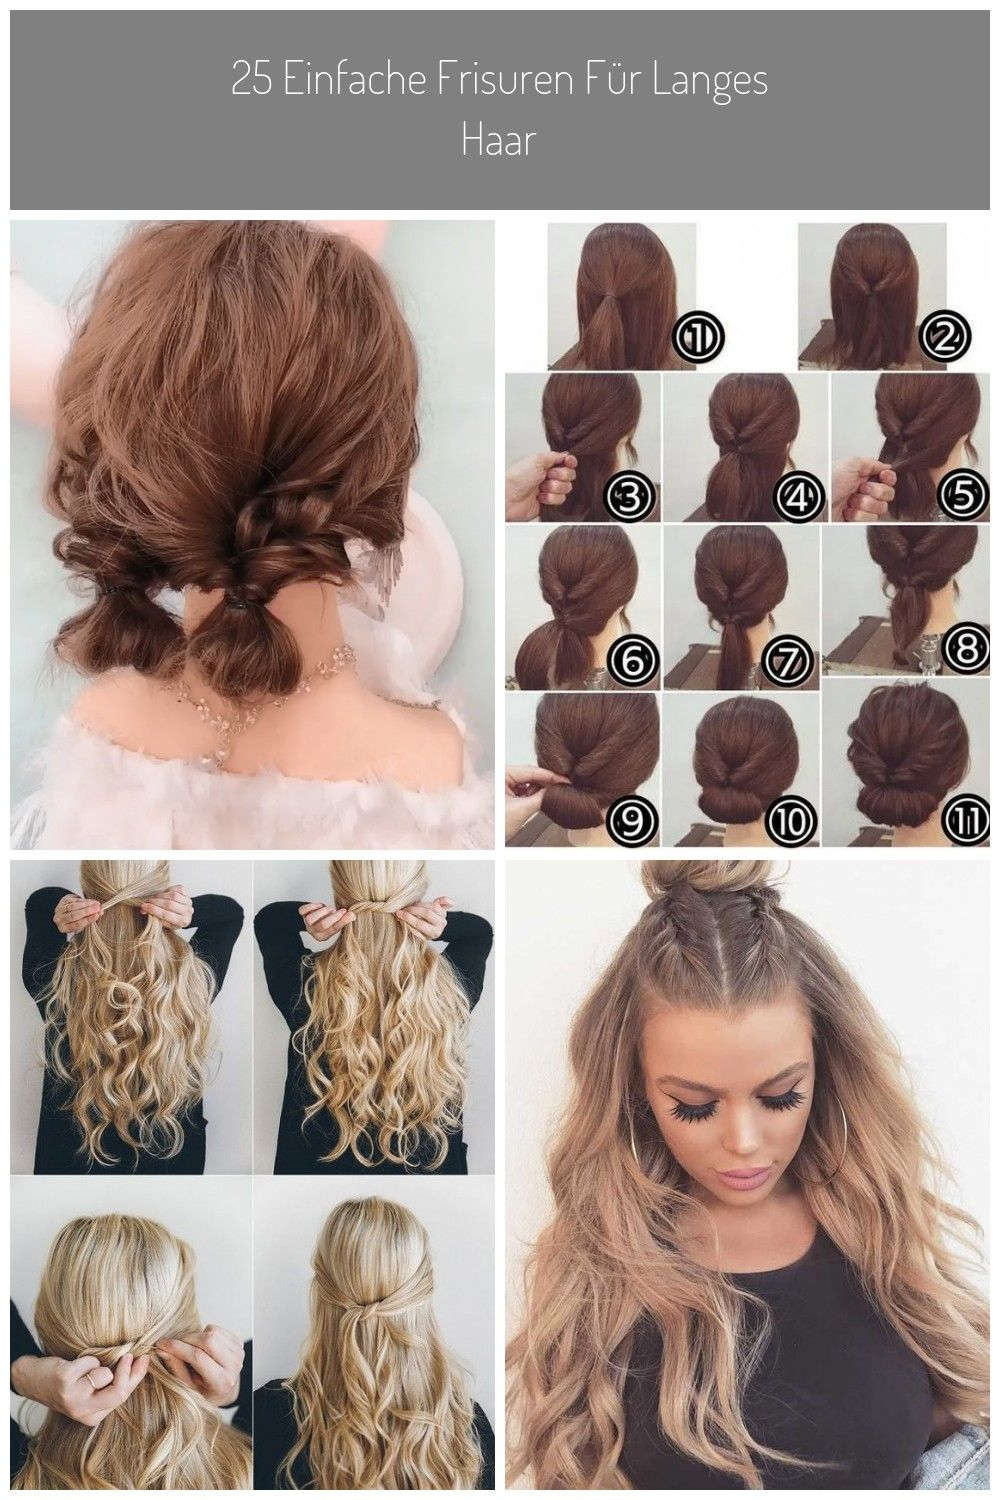 Easy Cute Hairstyle You Can Do It At Home Hair Hairstyle Hairtutorial Hairbun Hairchallenge40 Easy Hairstyle Ideas Fo Cute Hairstyles Hair Tutorial Hair Styles